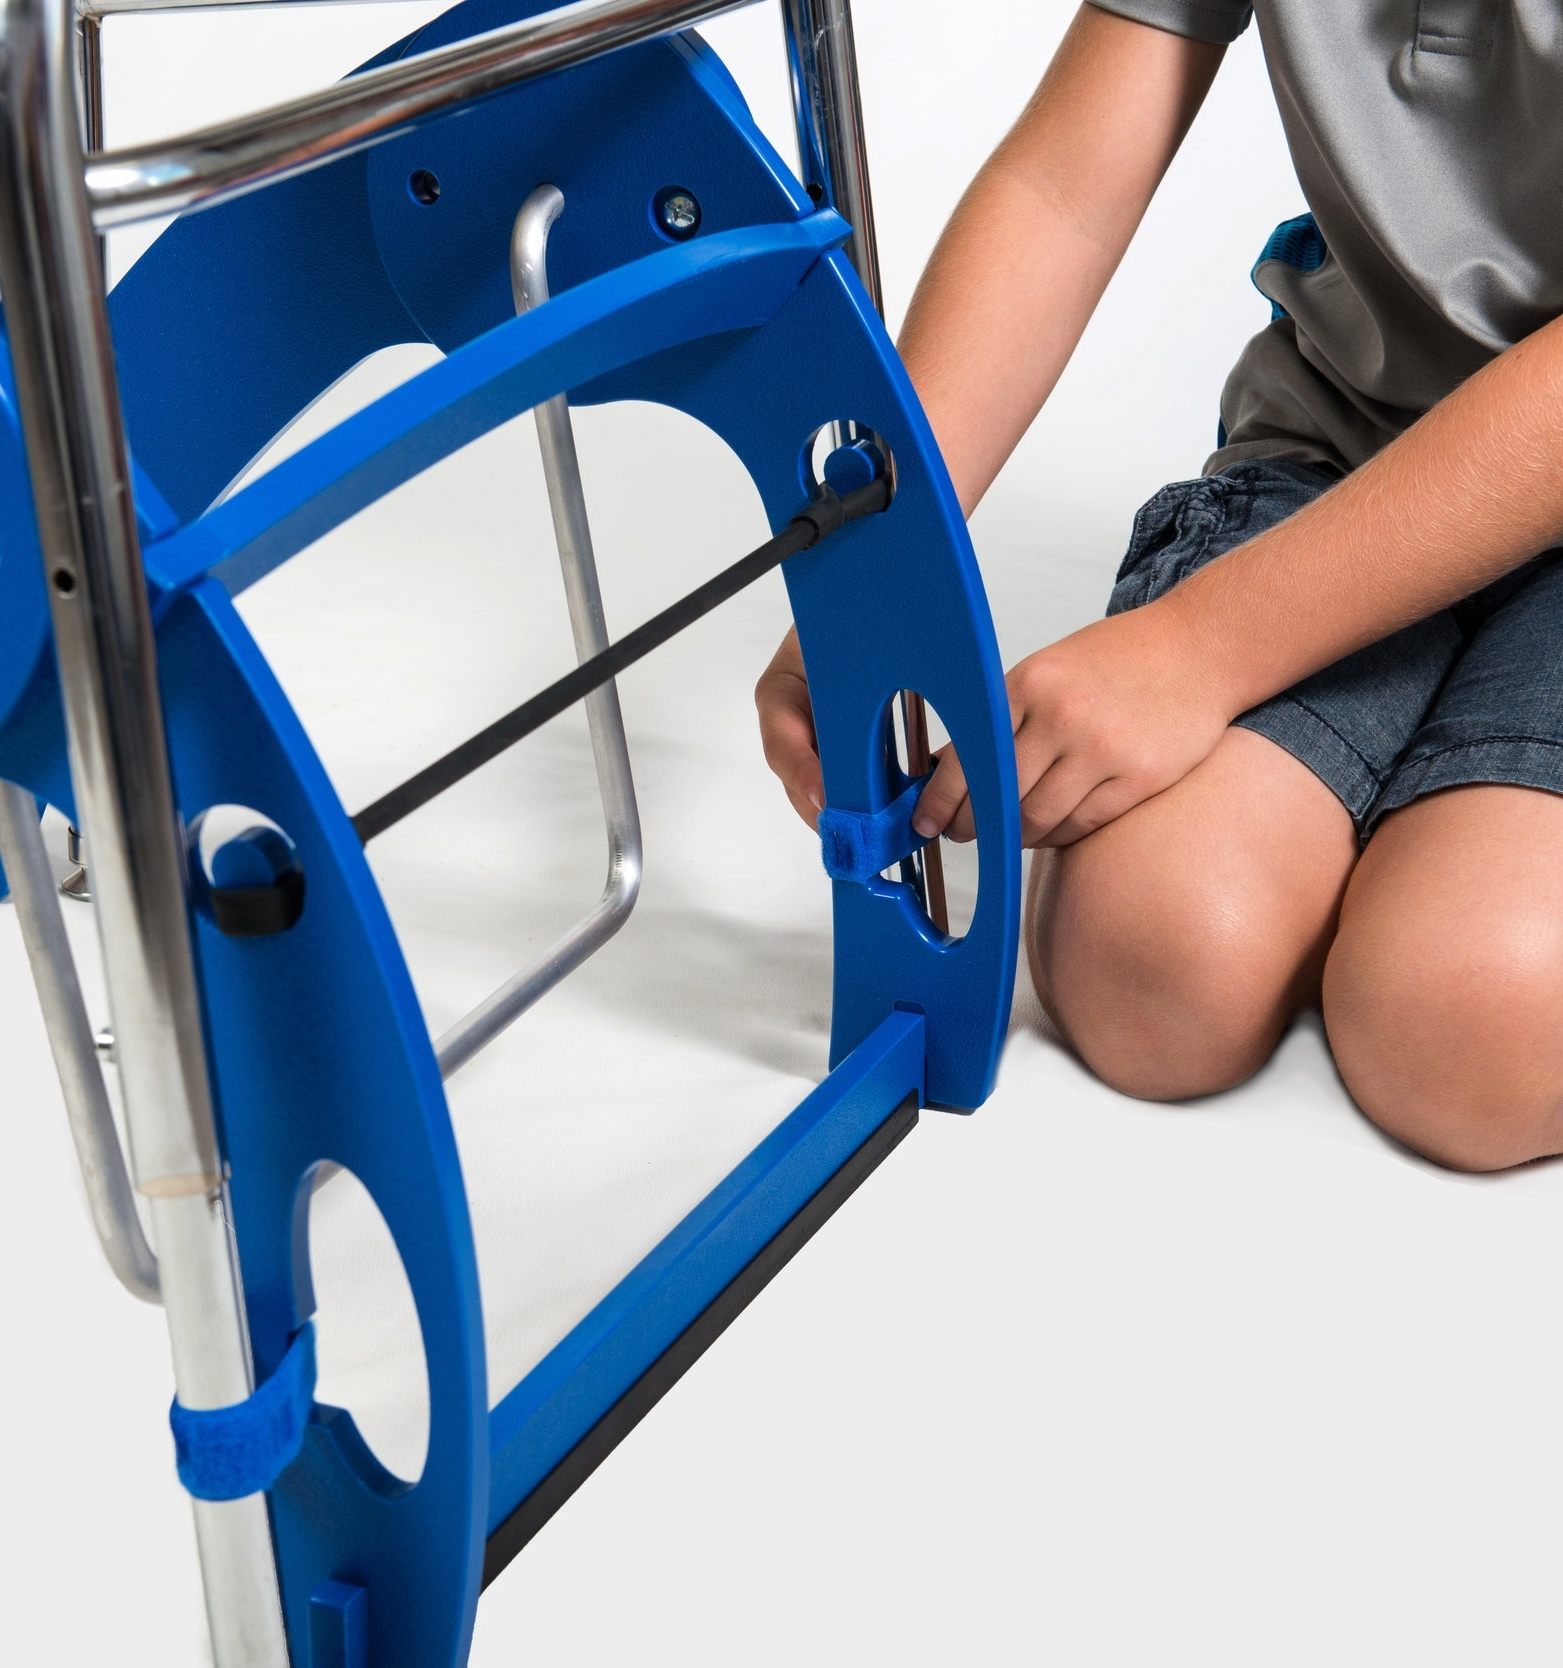 8. KINNEBAR® Place the KINNEBAR 100 under a desk andalign the strap notches of the KINNEBAR® legwith the legs of the desk. Attach the hook andloop straps to each leg. Loosely secure all fourlegs, and then go back and tighten all fourstraps one more time as tightly as possible.KINNEBAR™ 200: While the KINNEBAR 200 and 300 aredesigned to stand alone, two straps have beenprovided should you need to anchor it. Theblack rubber strip is designed to keep yourswing in place on most flooring and rugs. Ifneeded, you can anchor with 1 or 2 straps,whatever works best for your table or desk. -